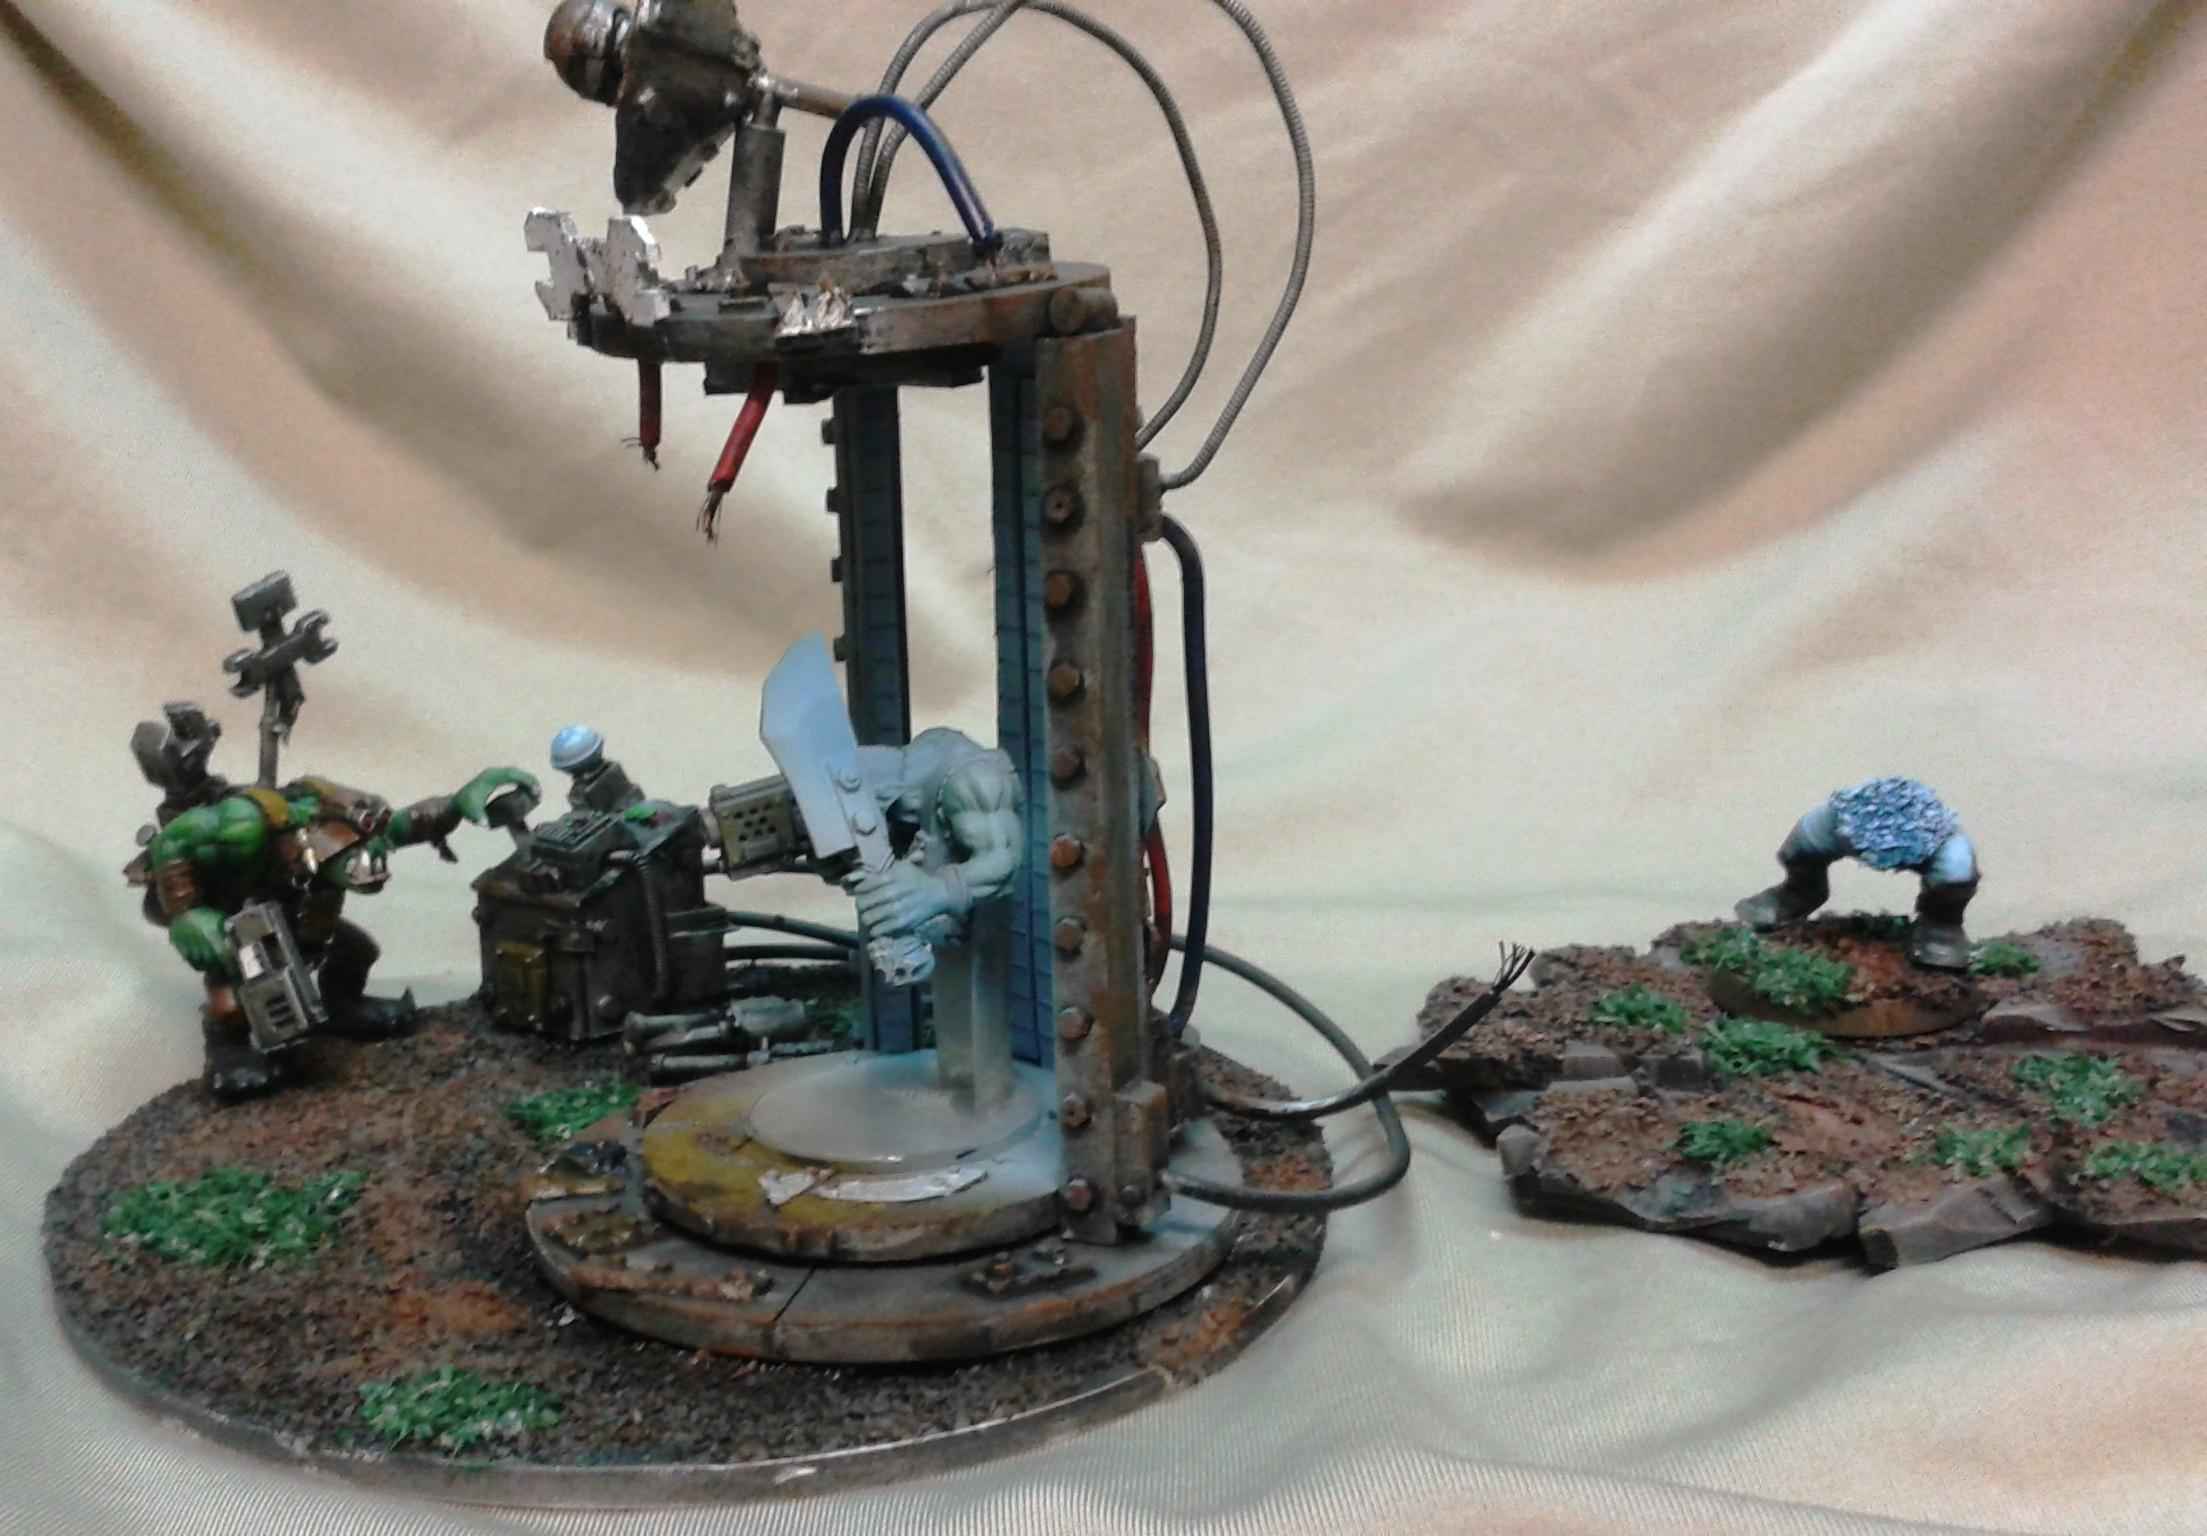 Bad Moons, Big Mek, Conversion, Evil Suns, Green, Orks, Scratch, Technology, Teleporter, Tellyporta